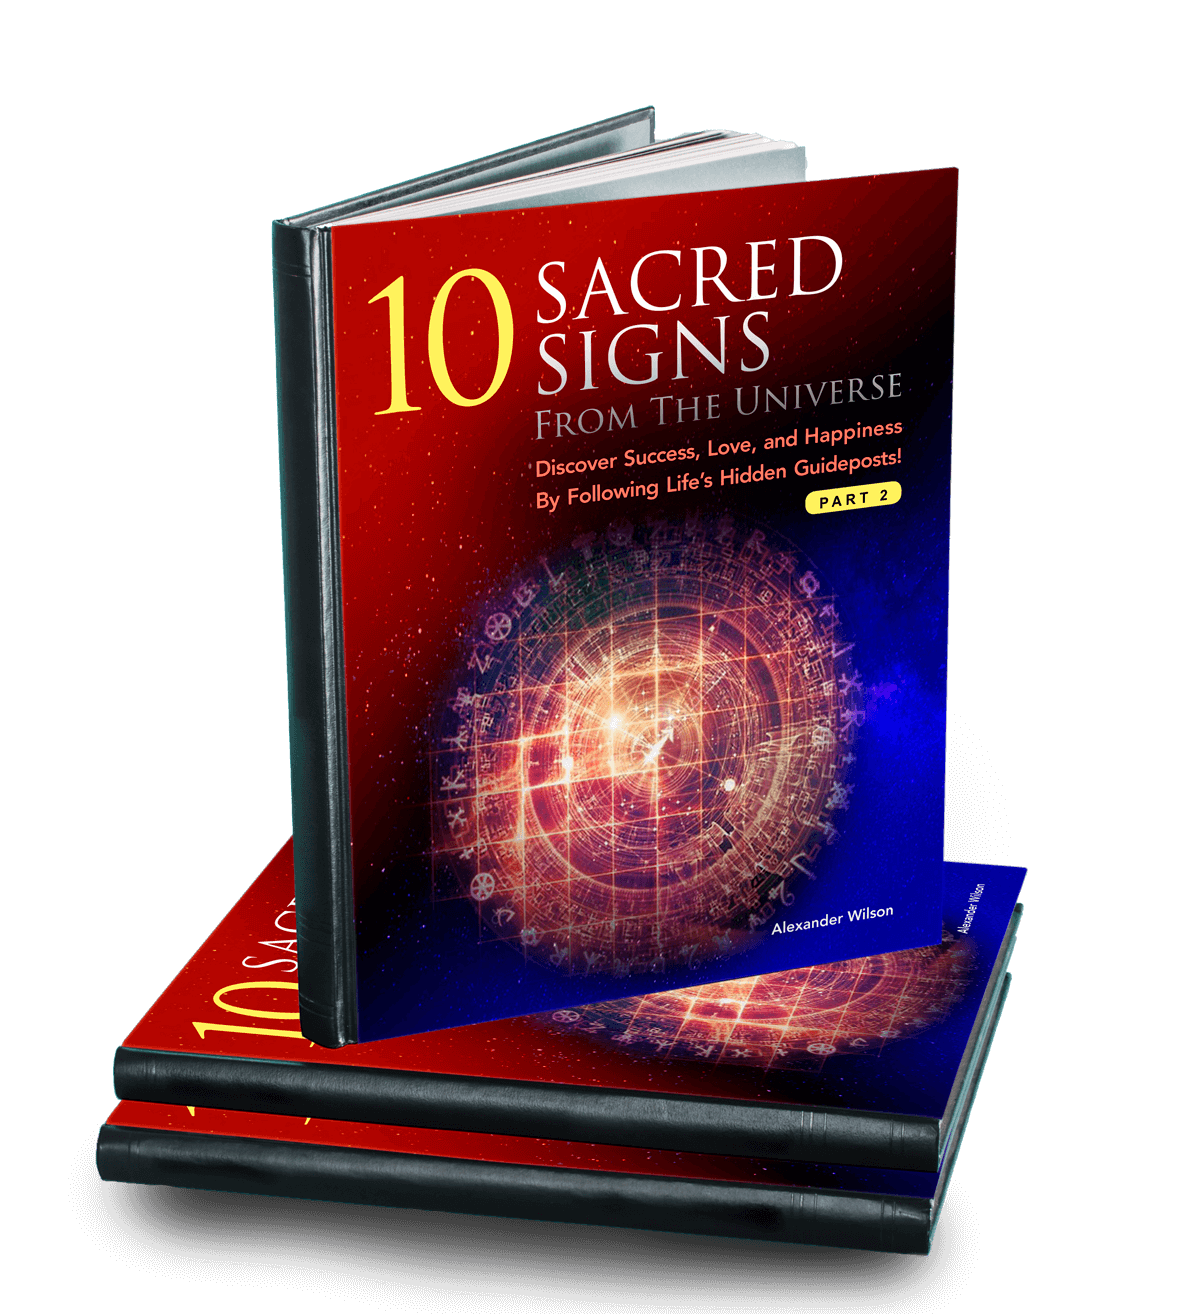 10 sacred signs from the universe